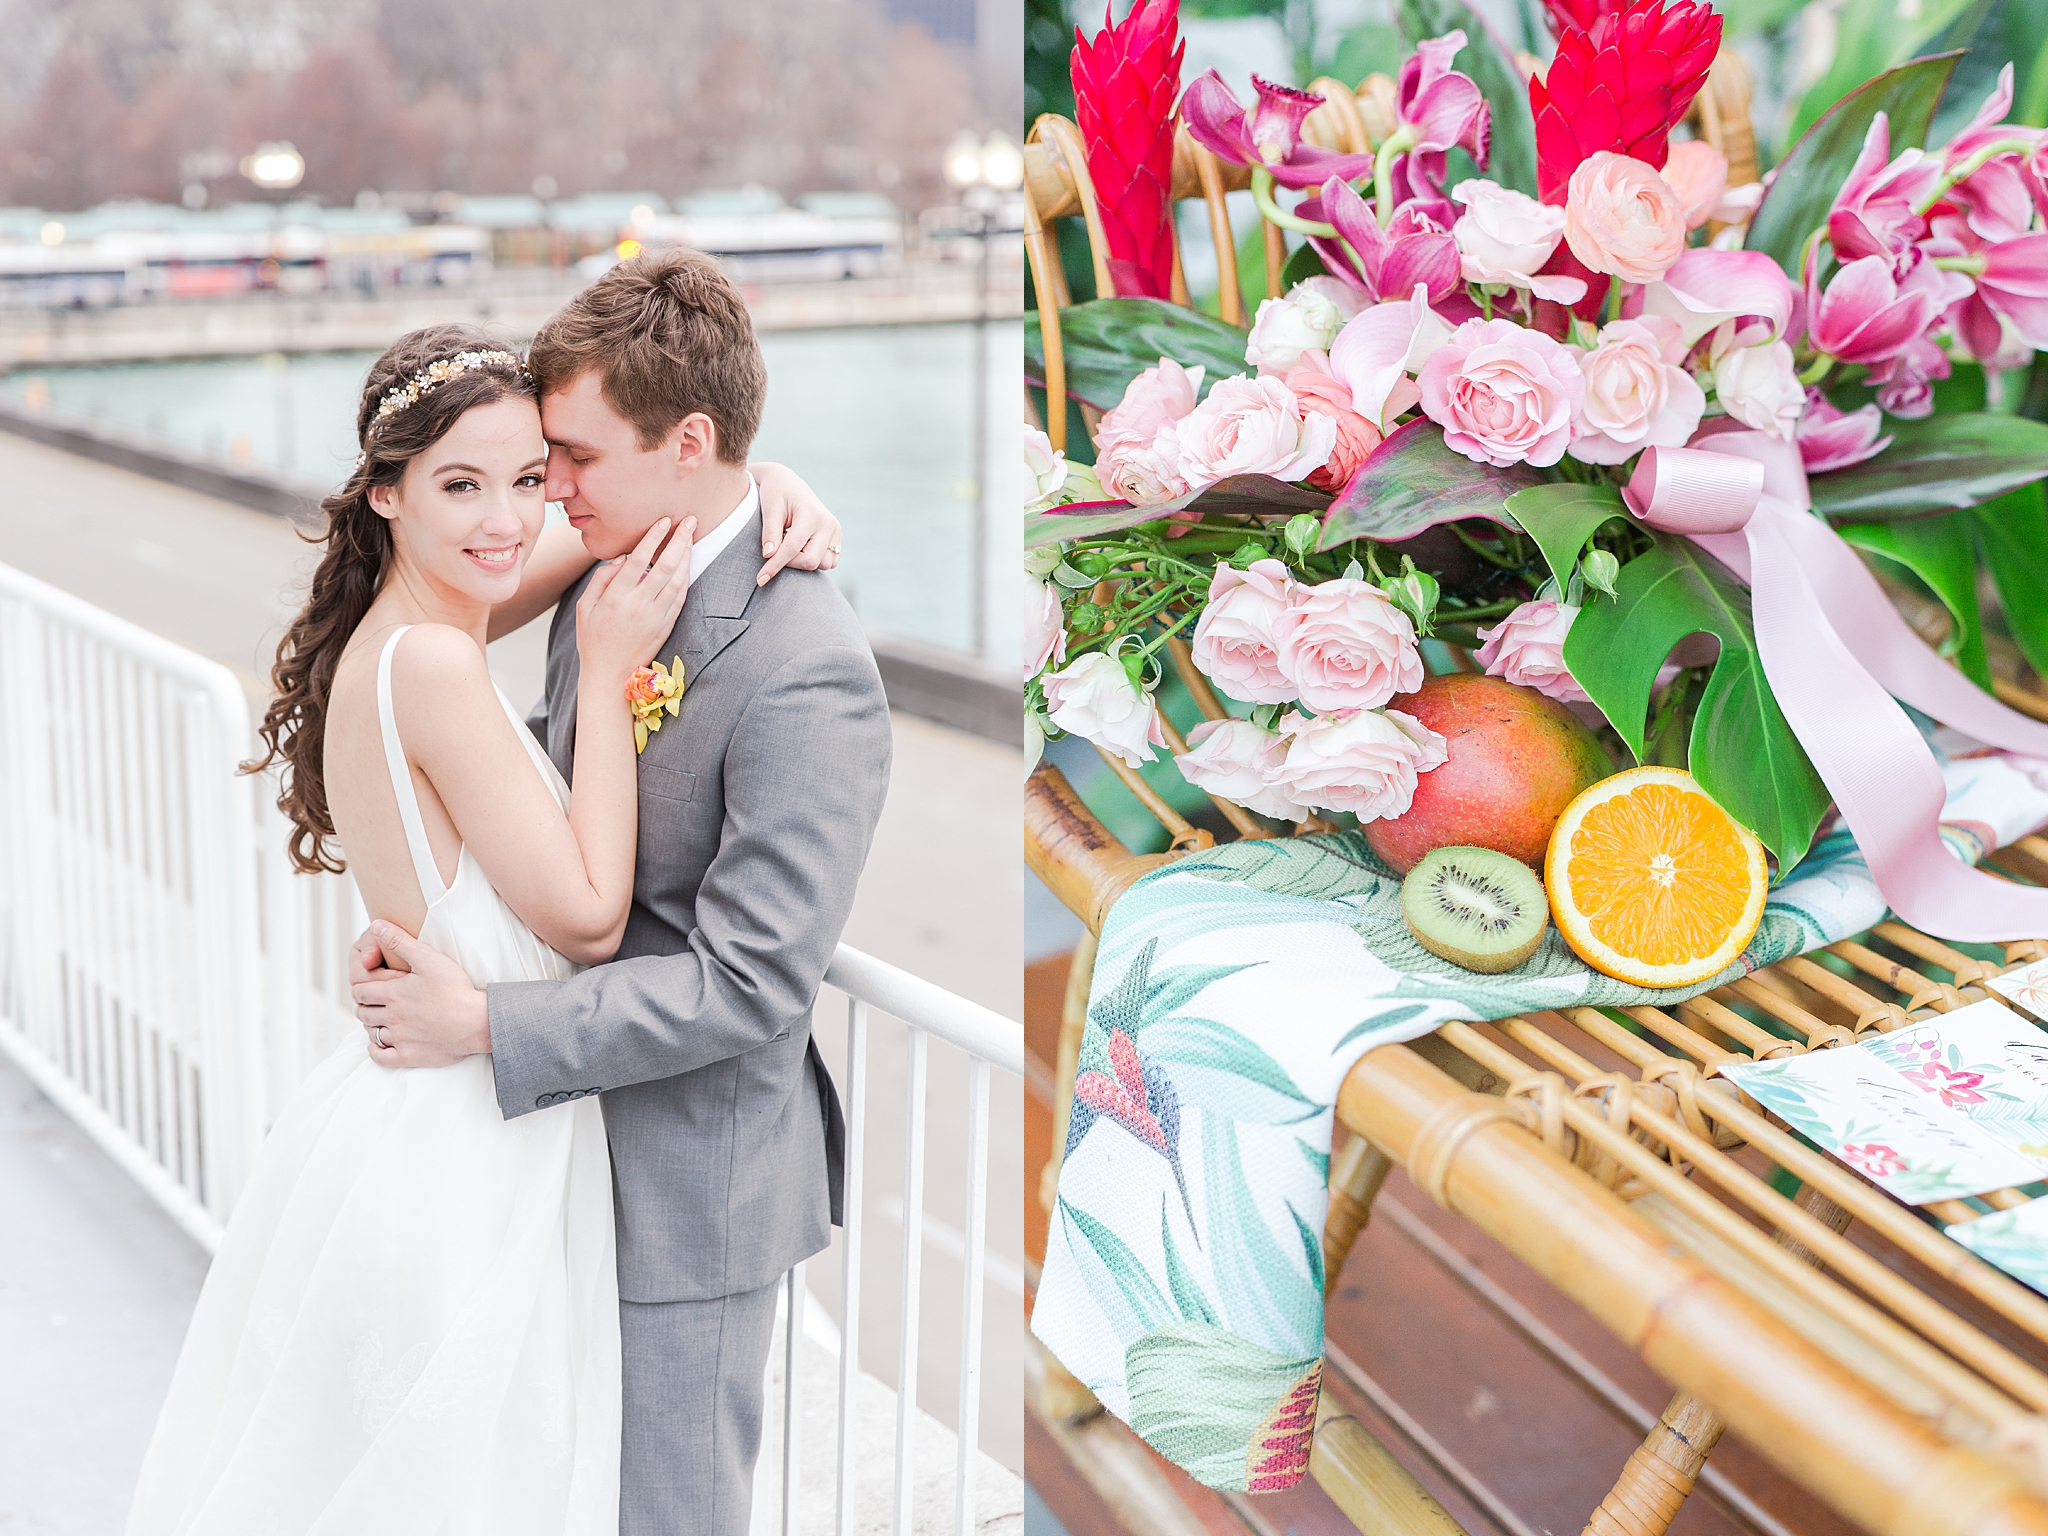 colorful-tropical-wedding-photos-at-the-crystal-gardens-in-chicago-illinois-by-courtney-carolyn-photography_0035.jpg